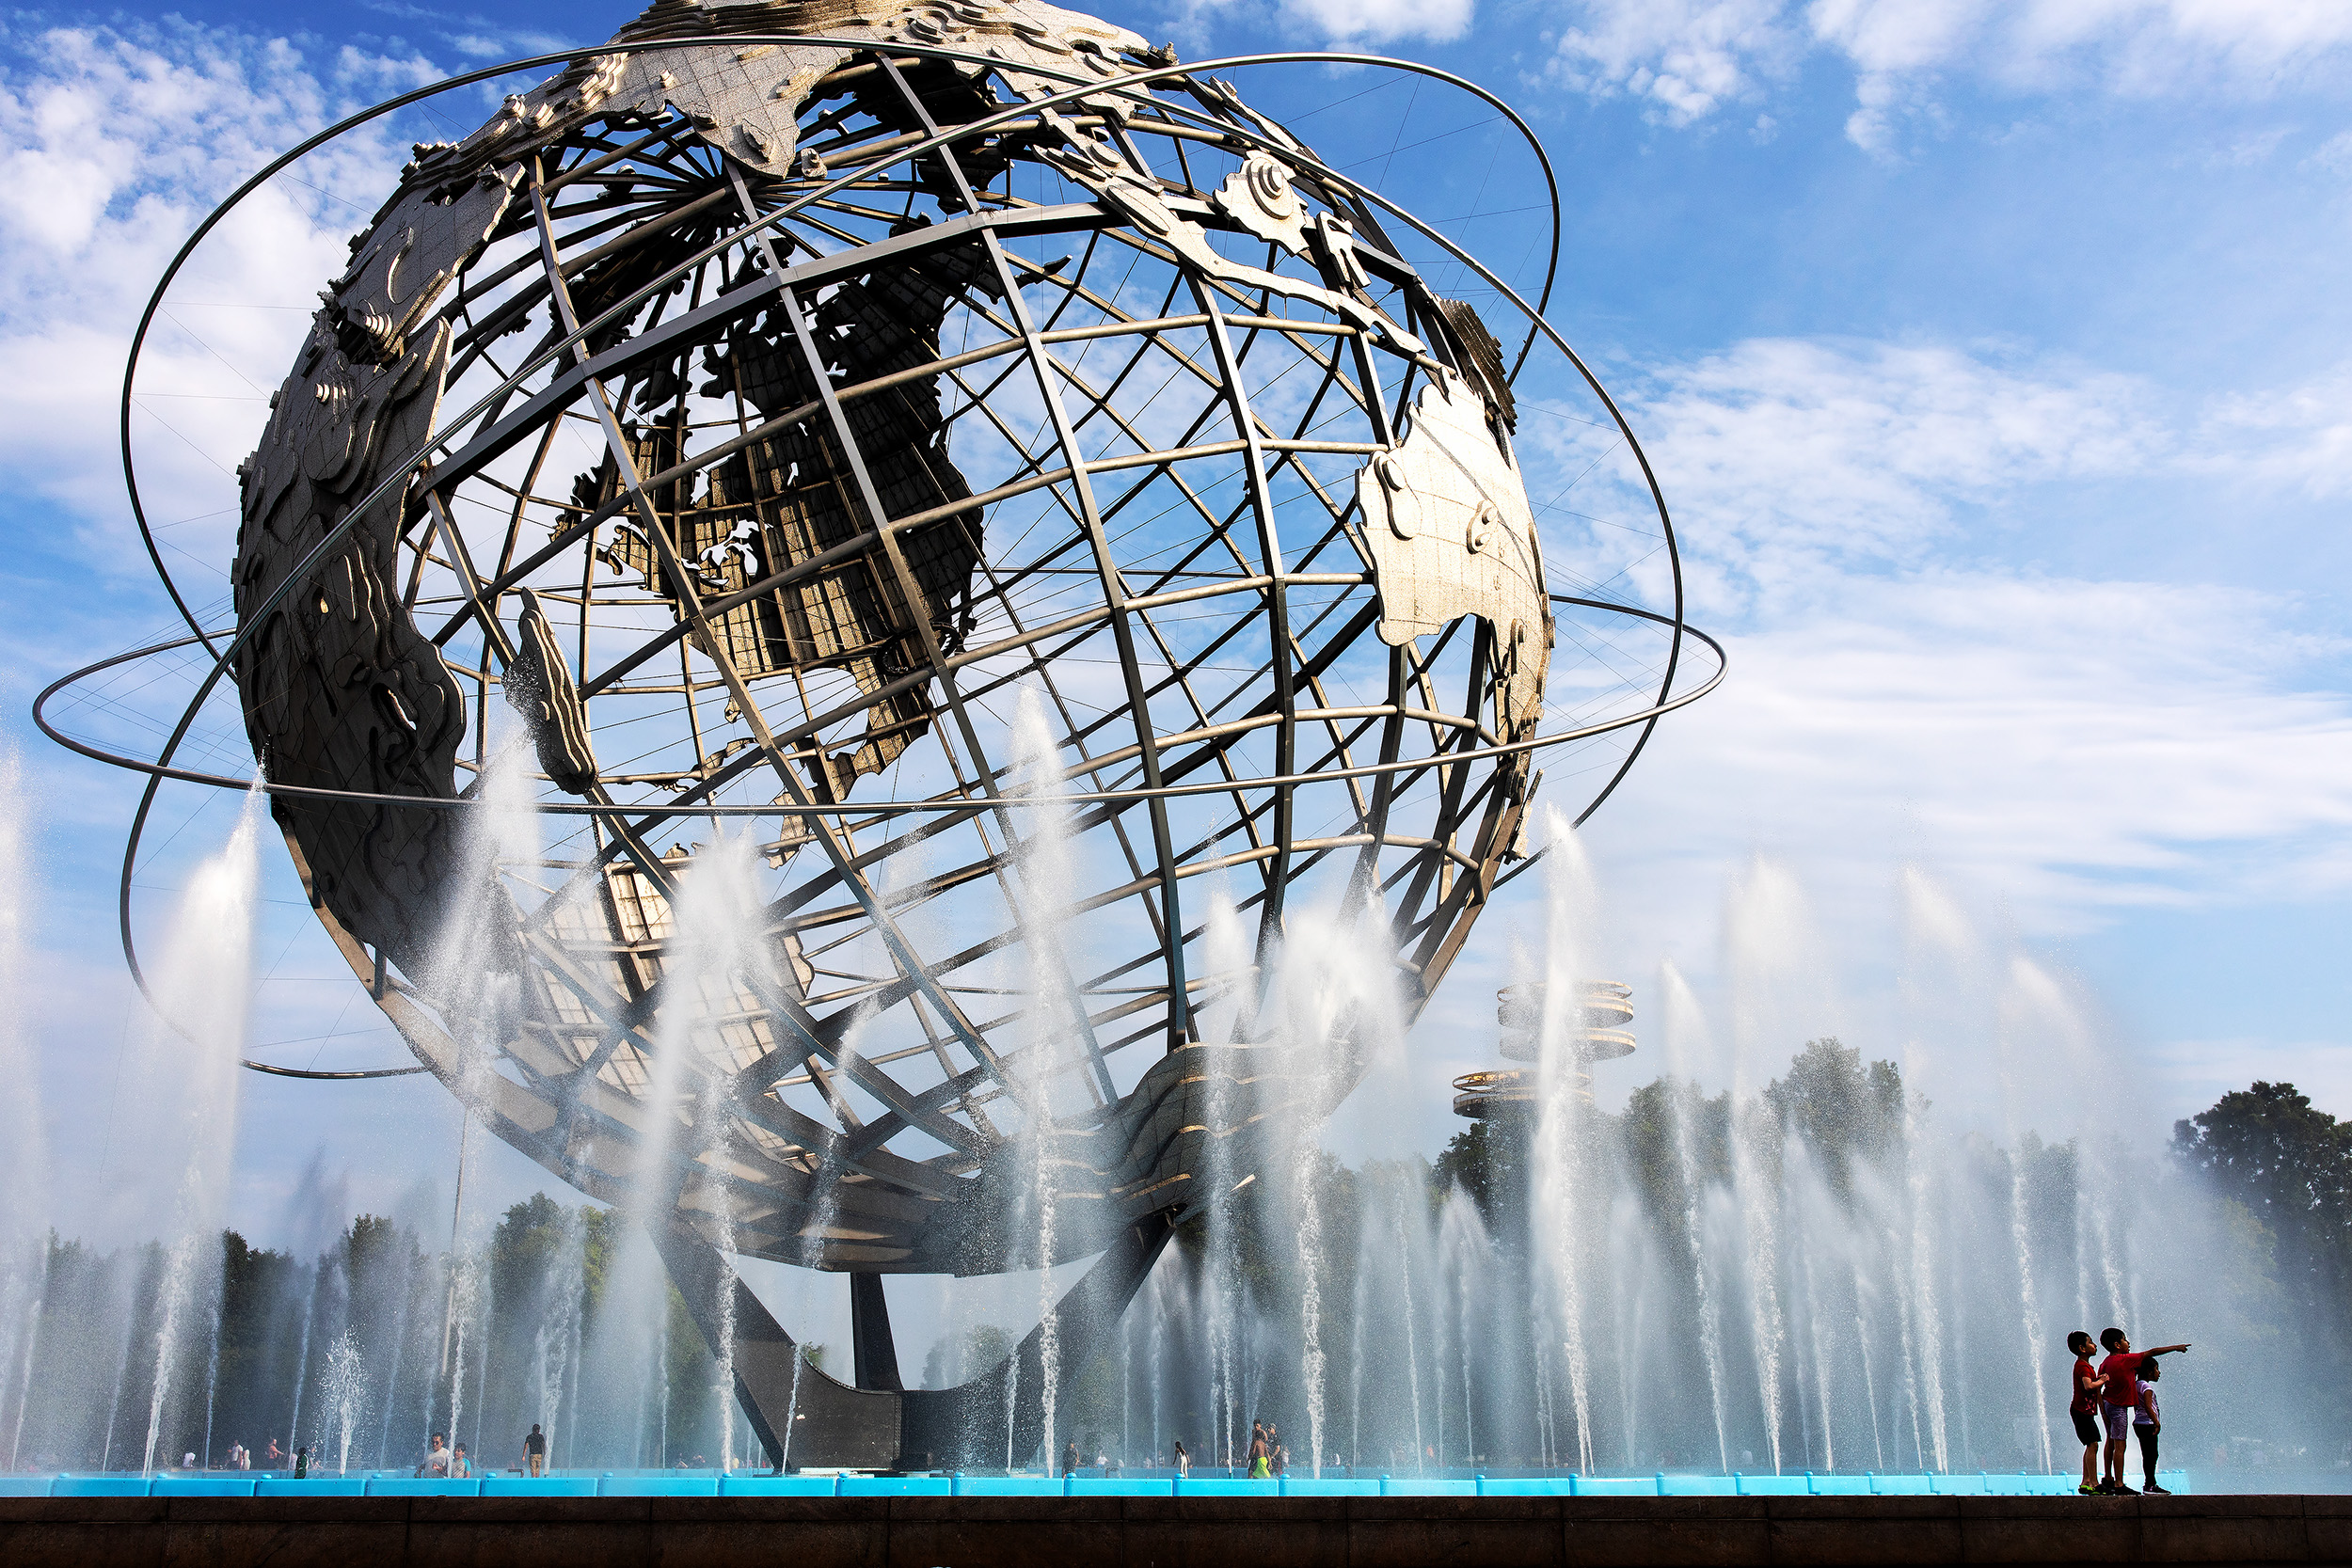 Kids play in the Unisphere fountain at the Flushing Meadows–Corona Park in Queens, New York.